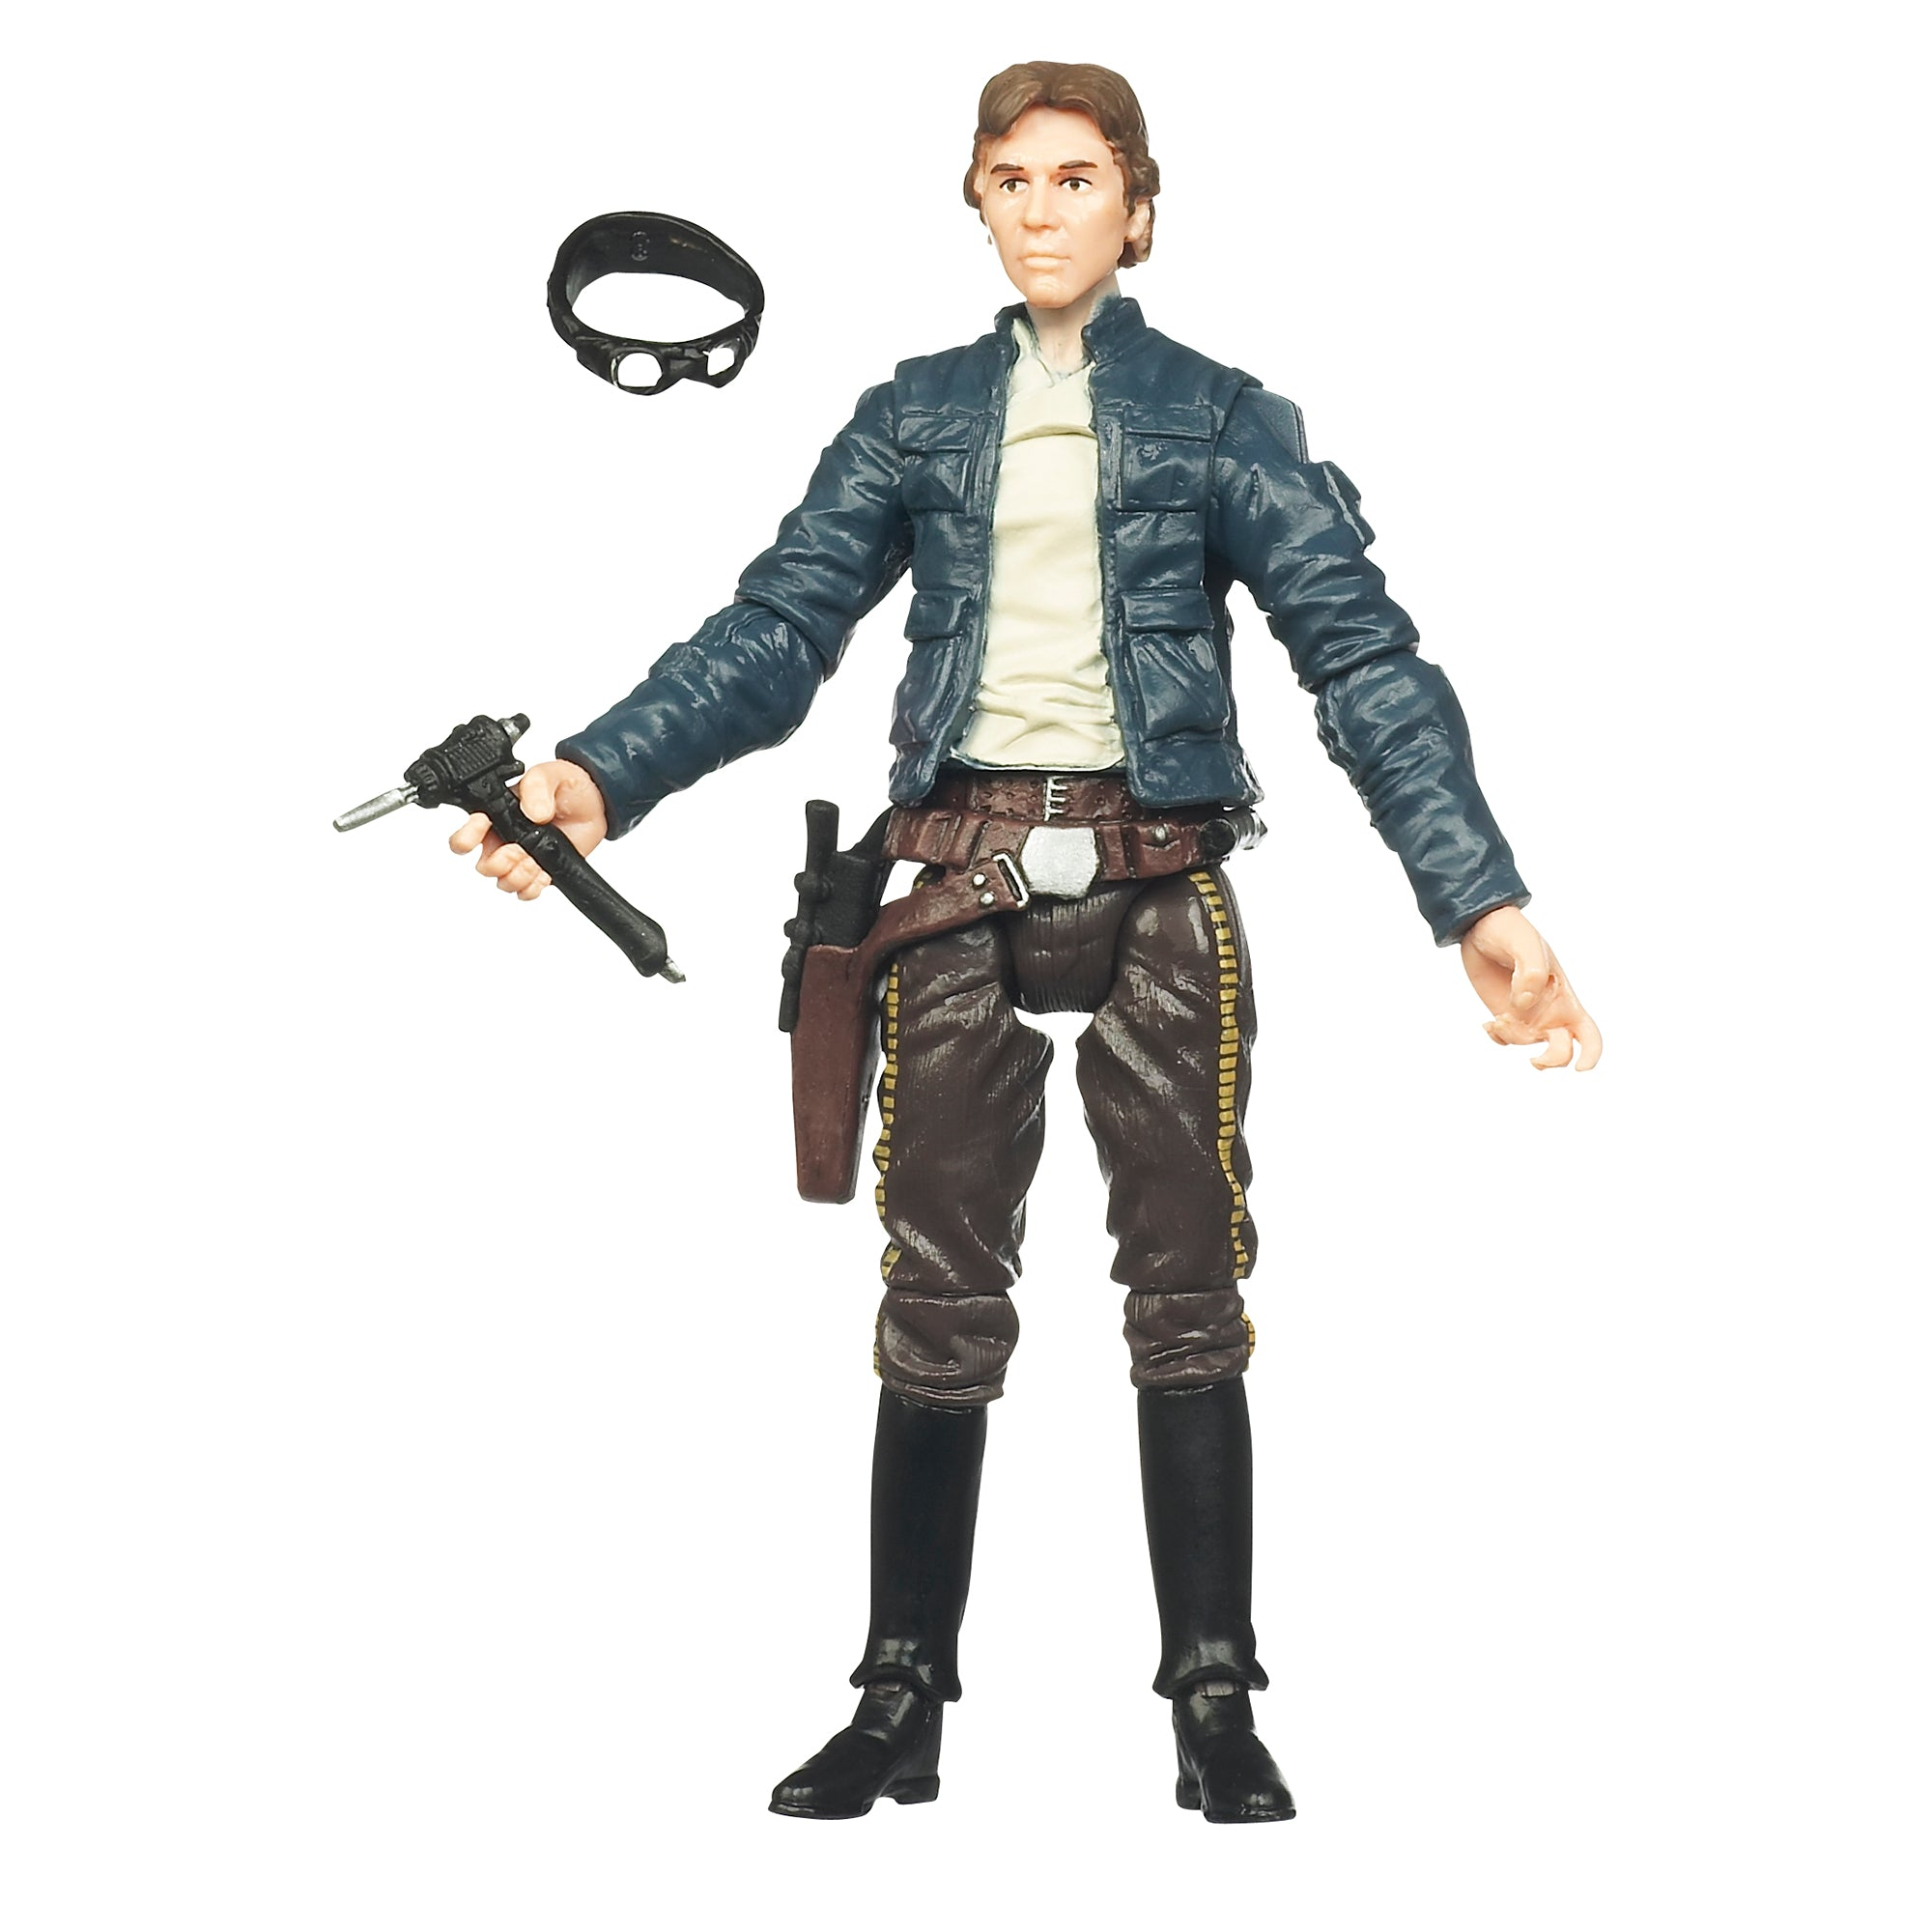 Star Wars The Vintage Collection Han Solo Figure